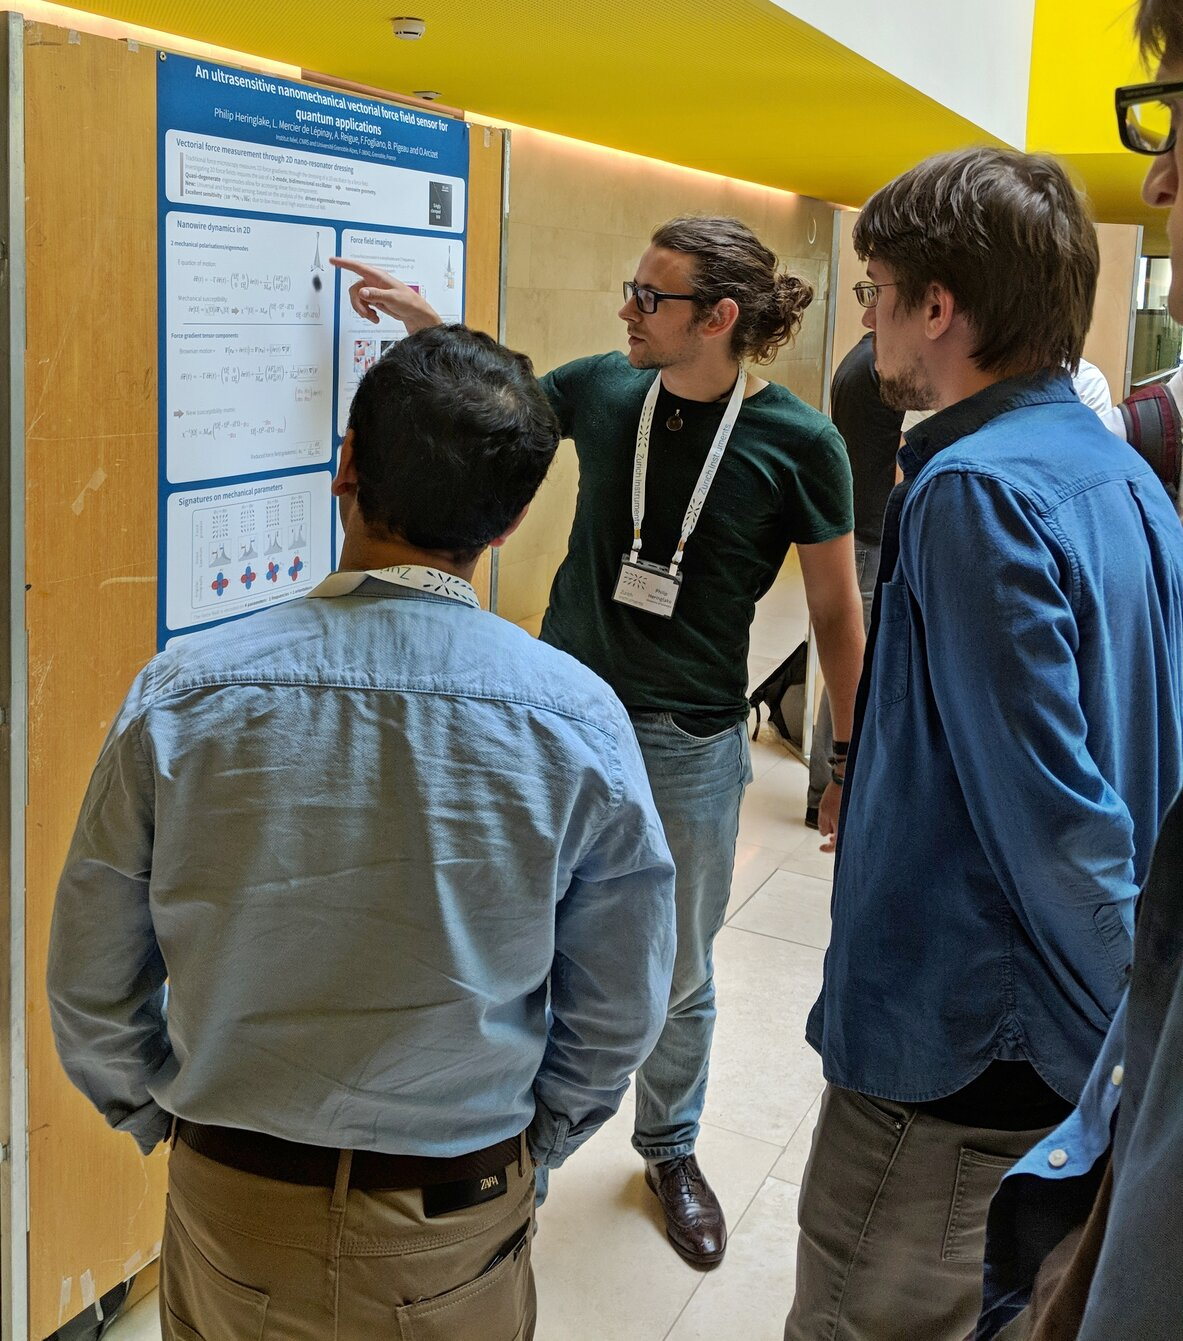 Poster session in action